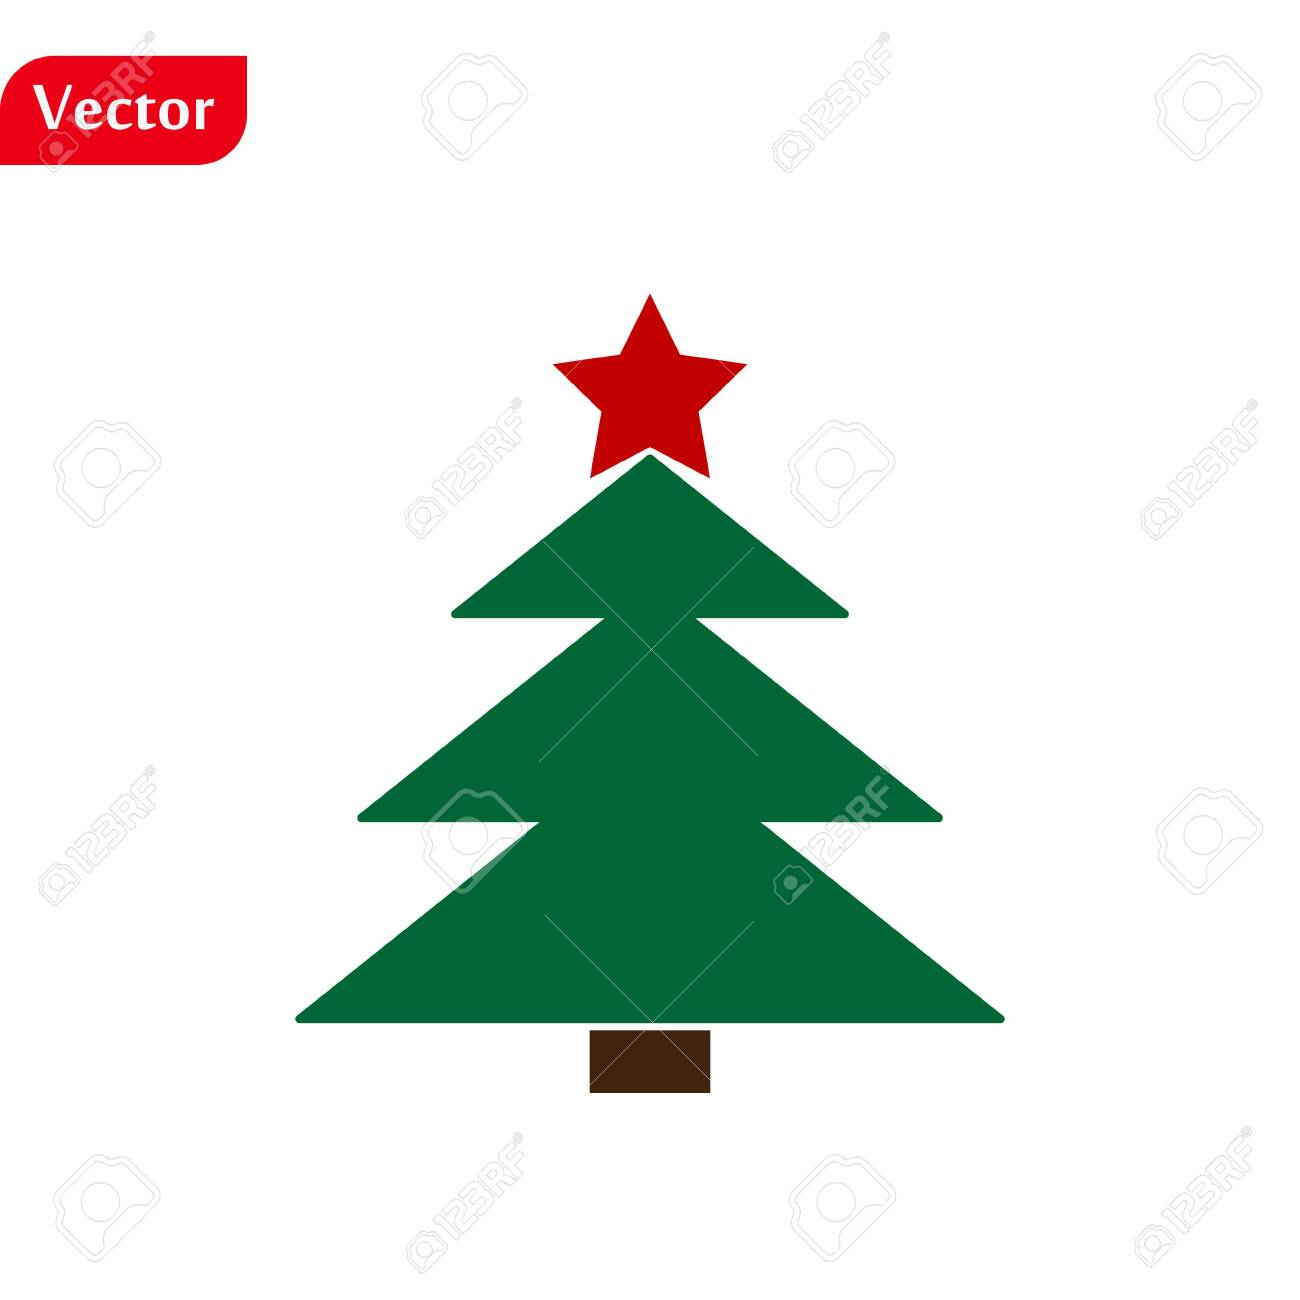 Christmas Tree Color Green Icon With Red Star Vector Design Royalty Free Cliparts Vectors And Stock Illustration Image 137887863